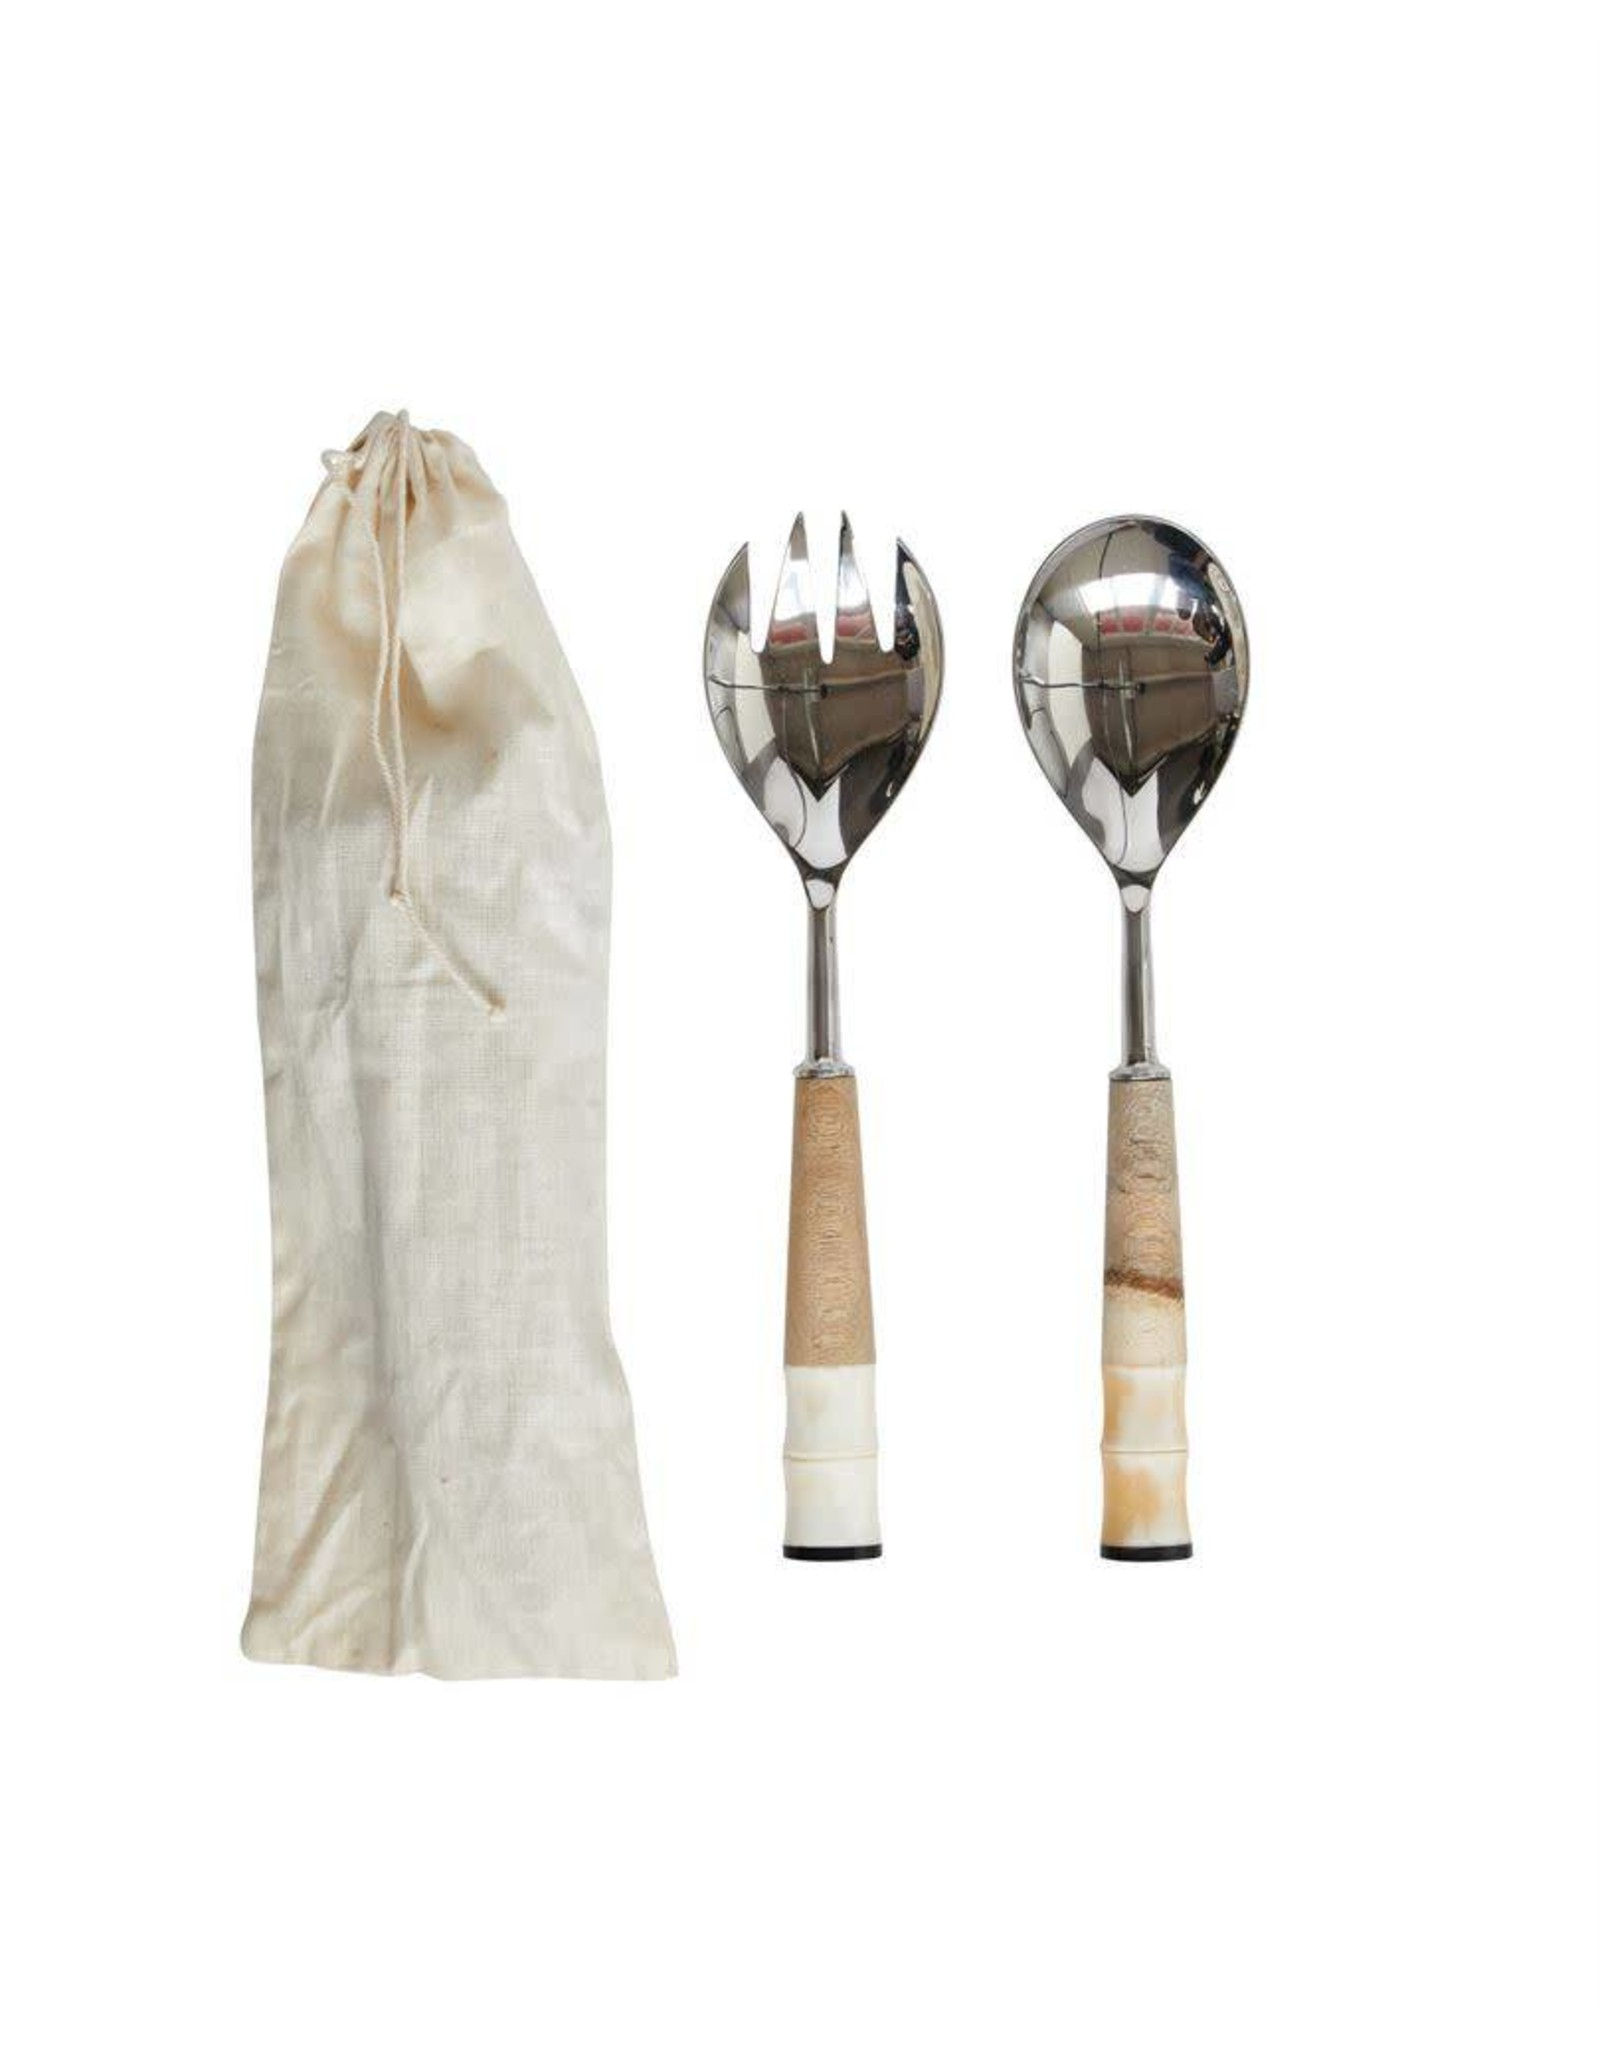 Stainless Steel, Wood & Horn Salad Servers w/ bag